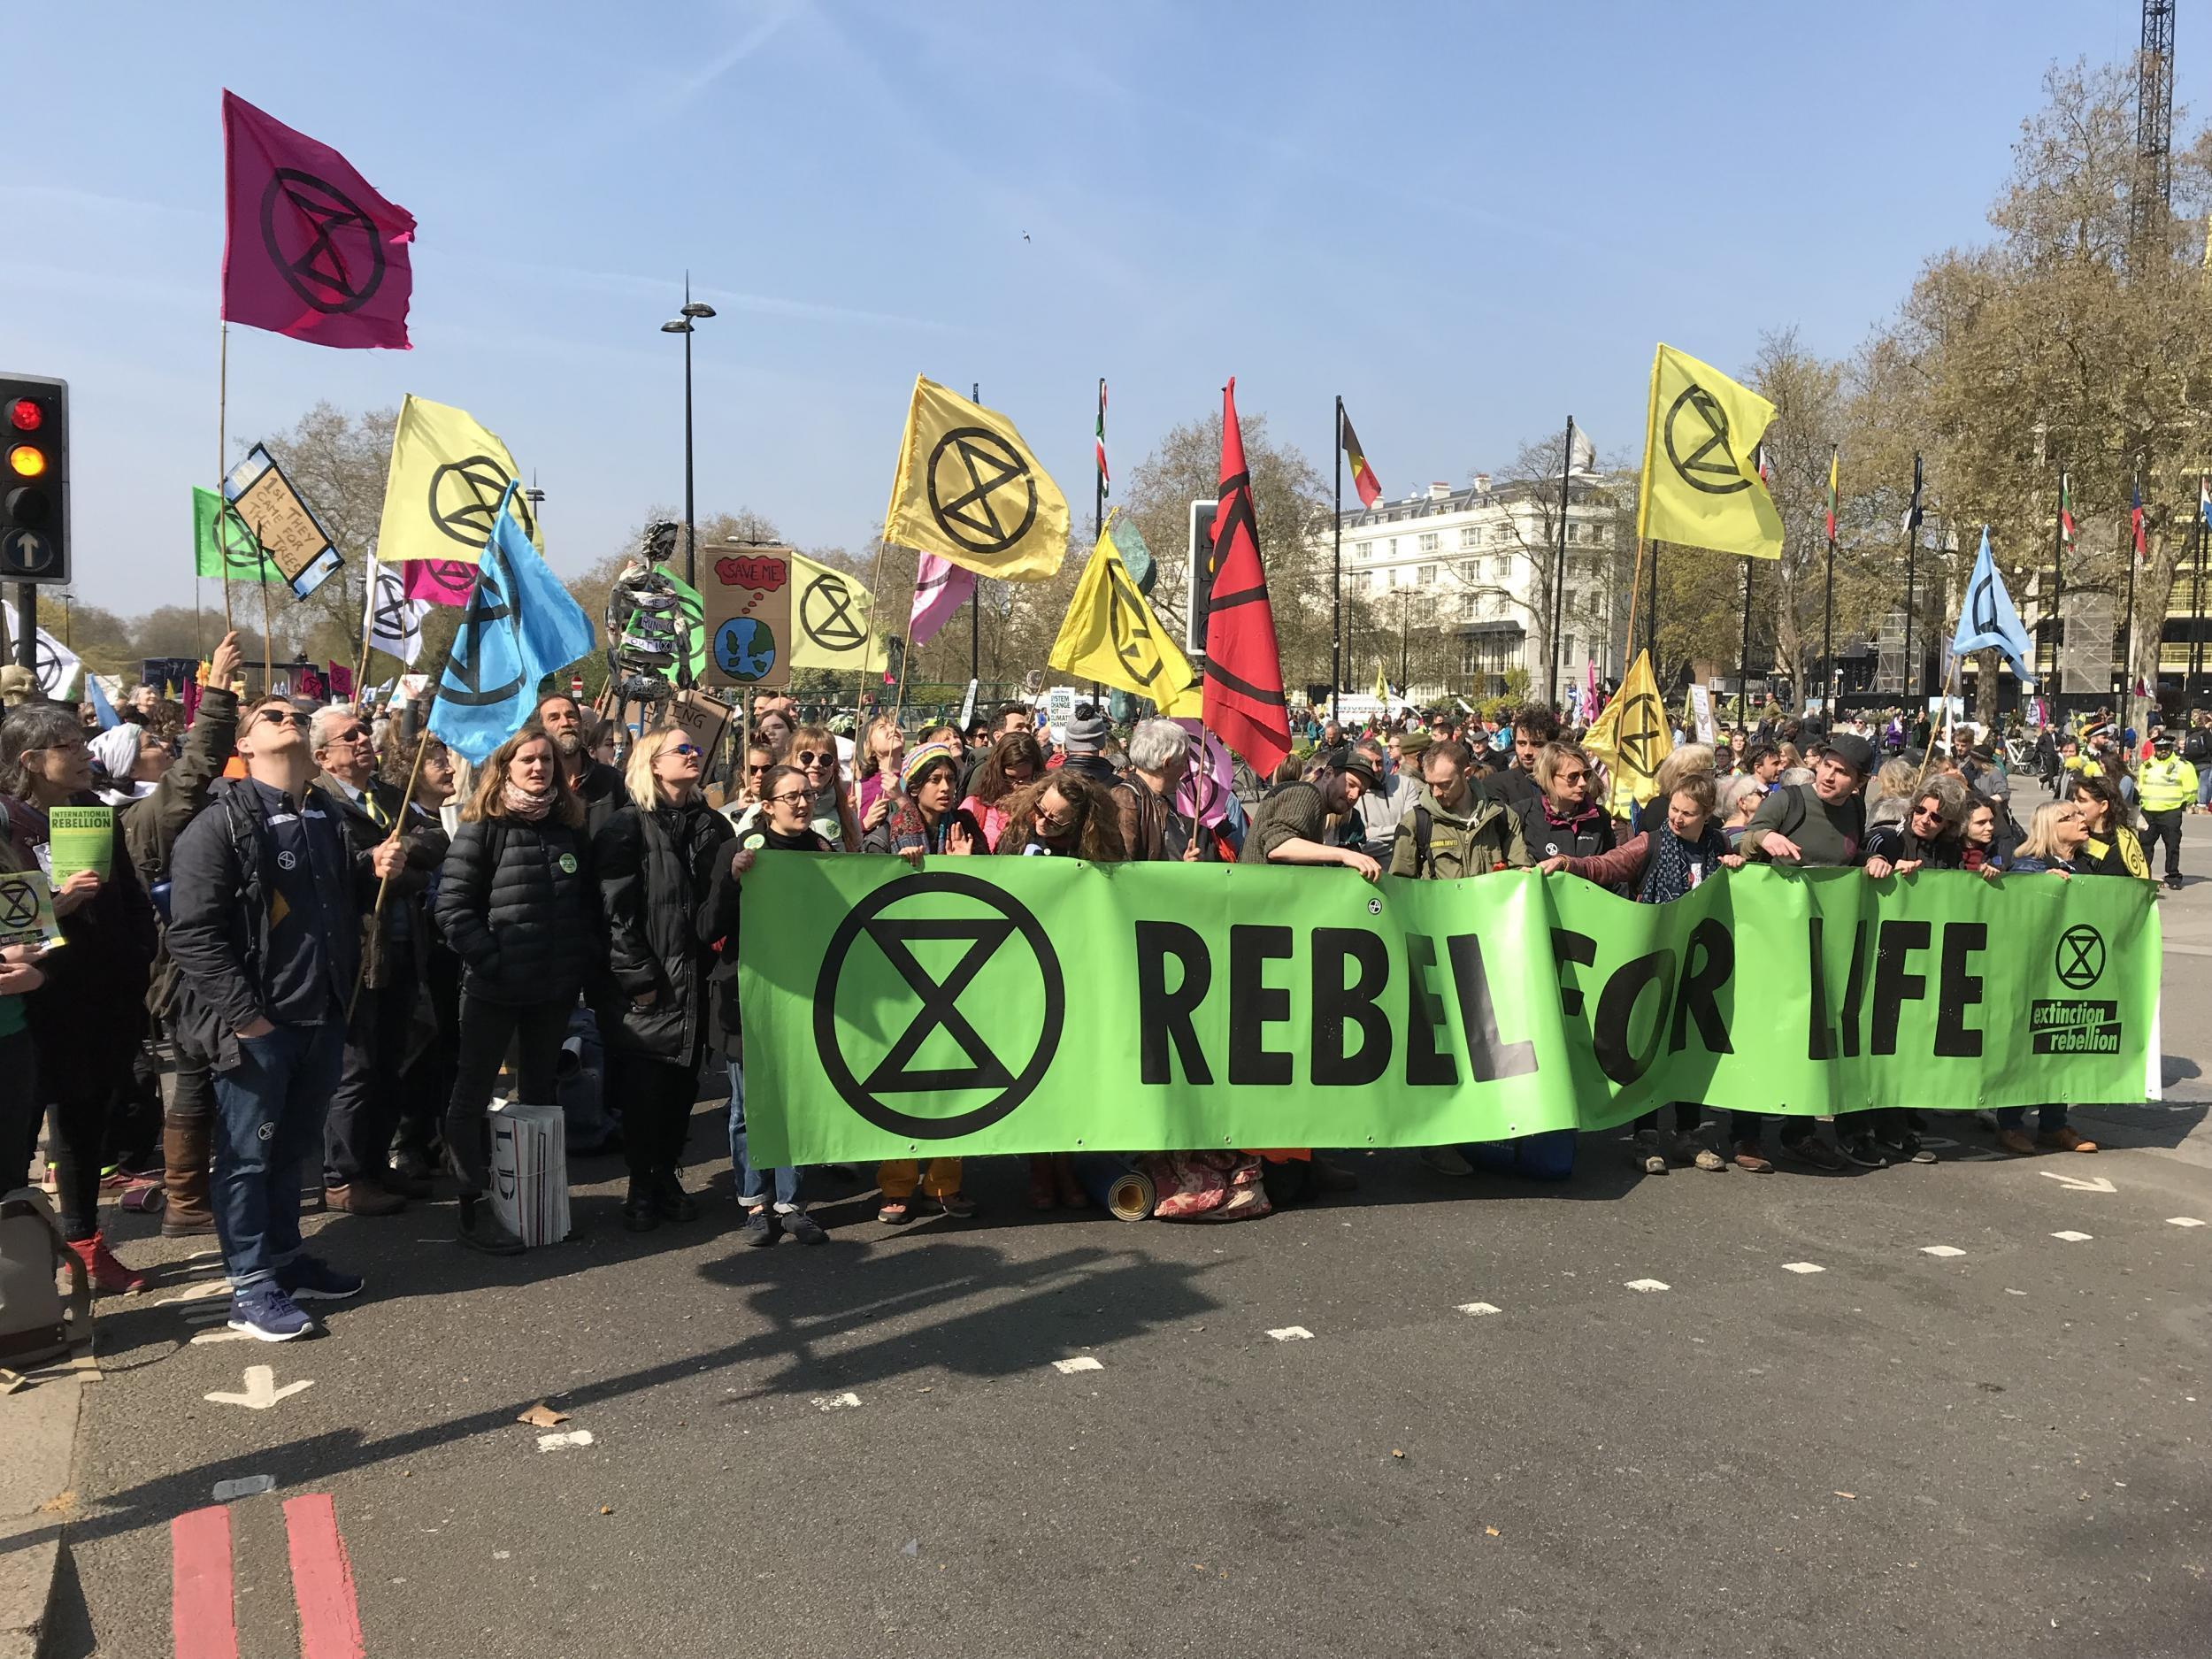 Nearly 300 people arrested in ongoing climate change protests in London